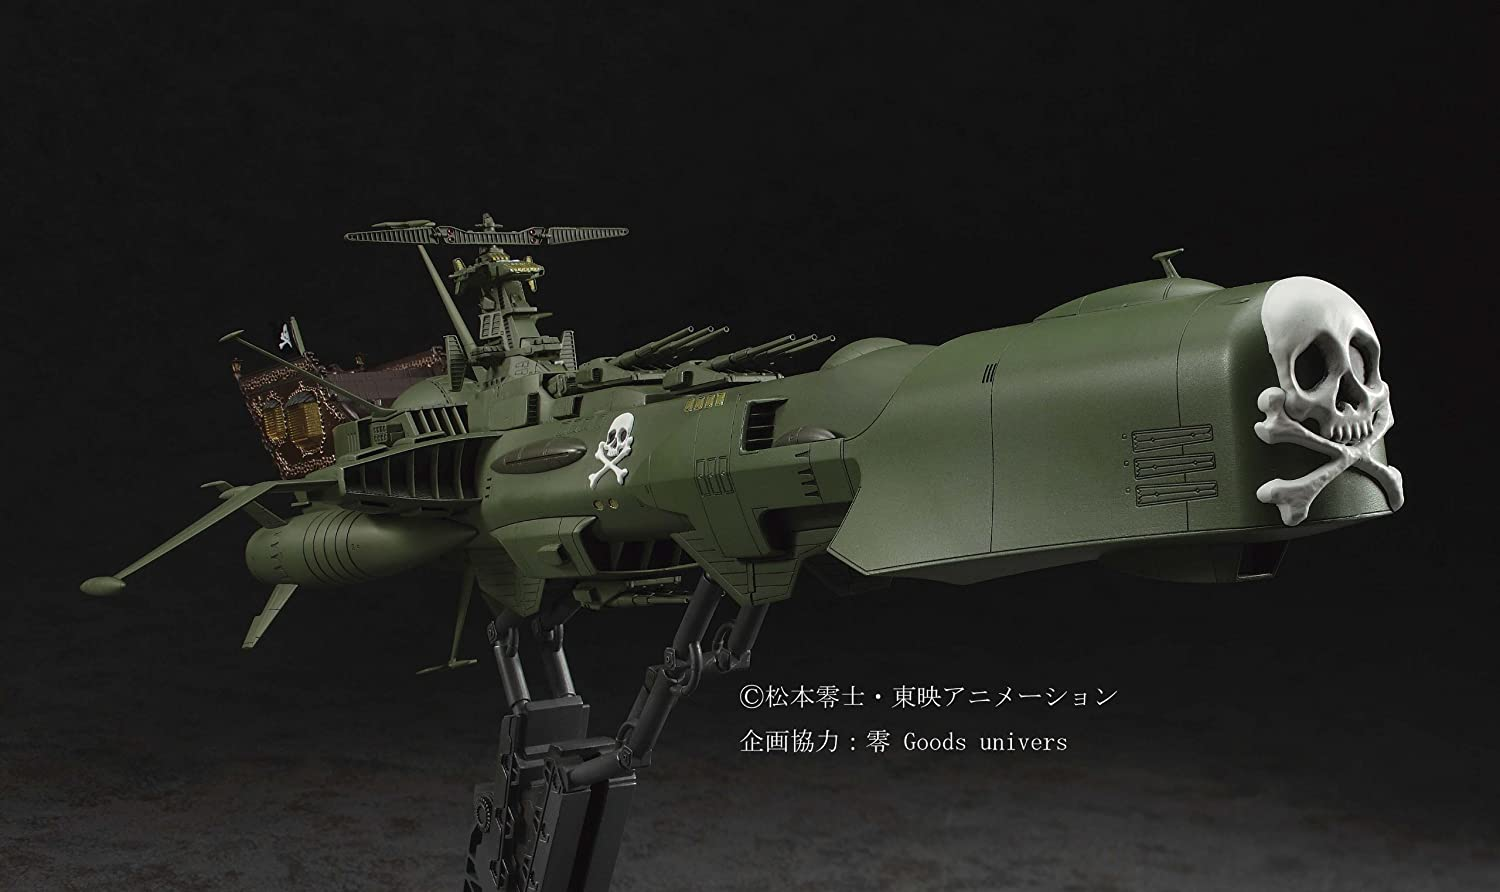 Harlock Space Pirate Ship Fog - Pics about space